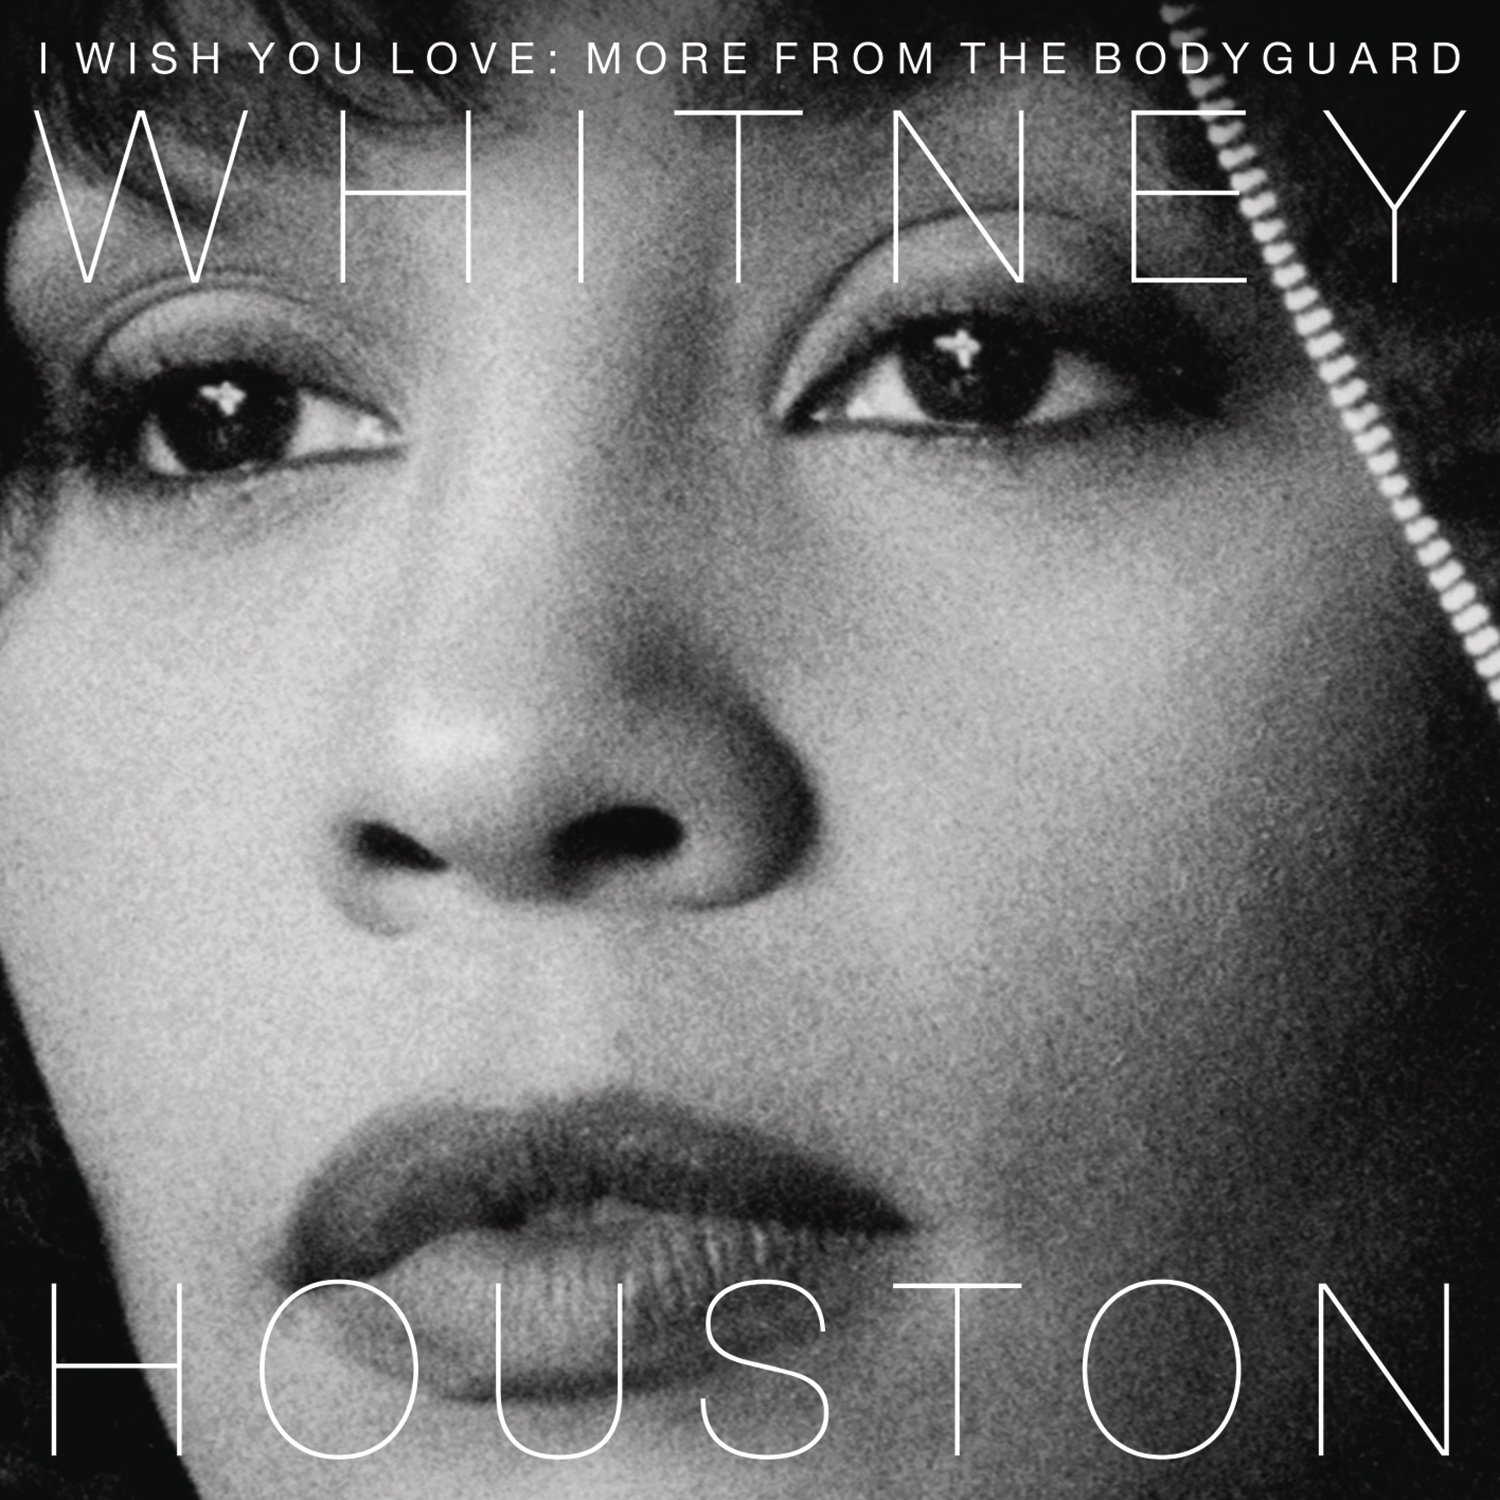 Whitney Houston – I Wish You Love: More From The Bodyguard